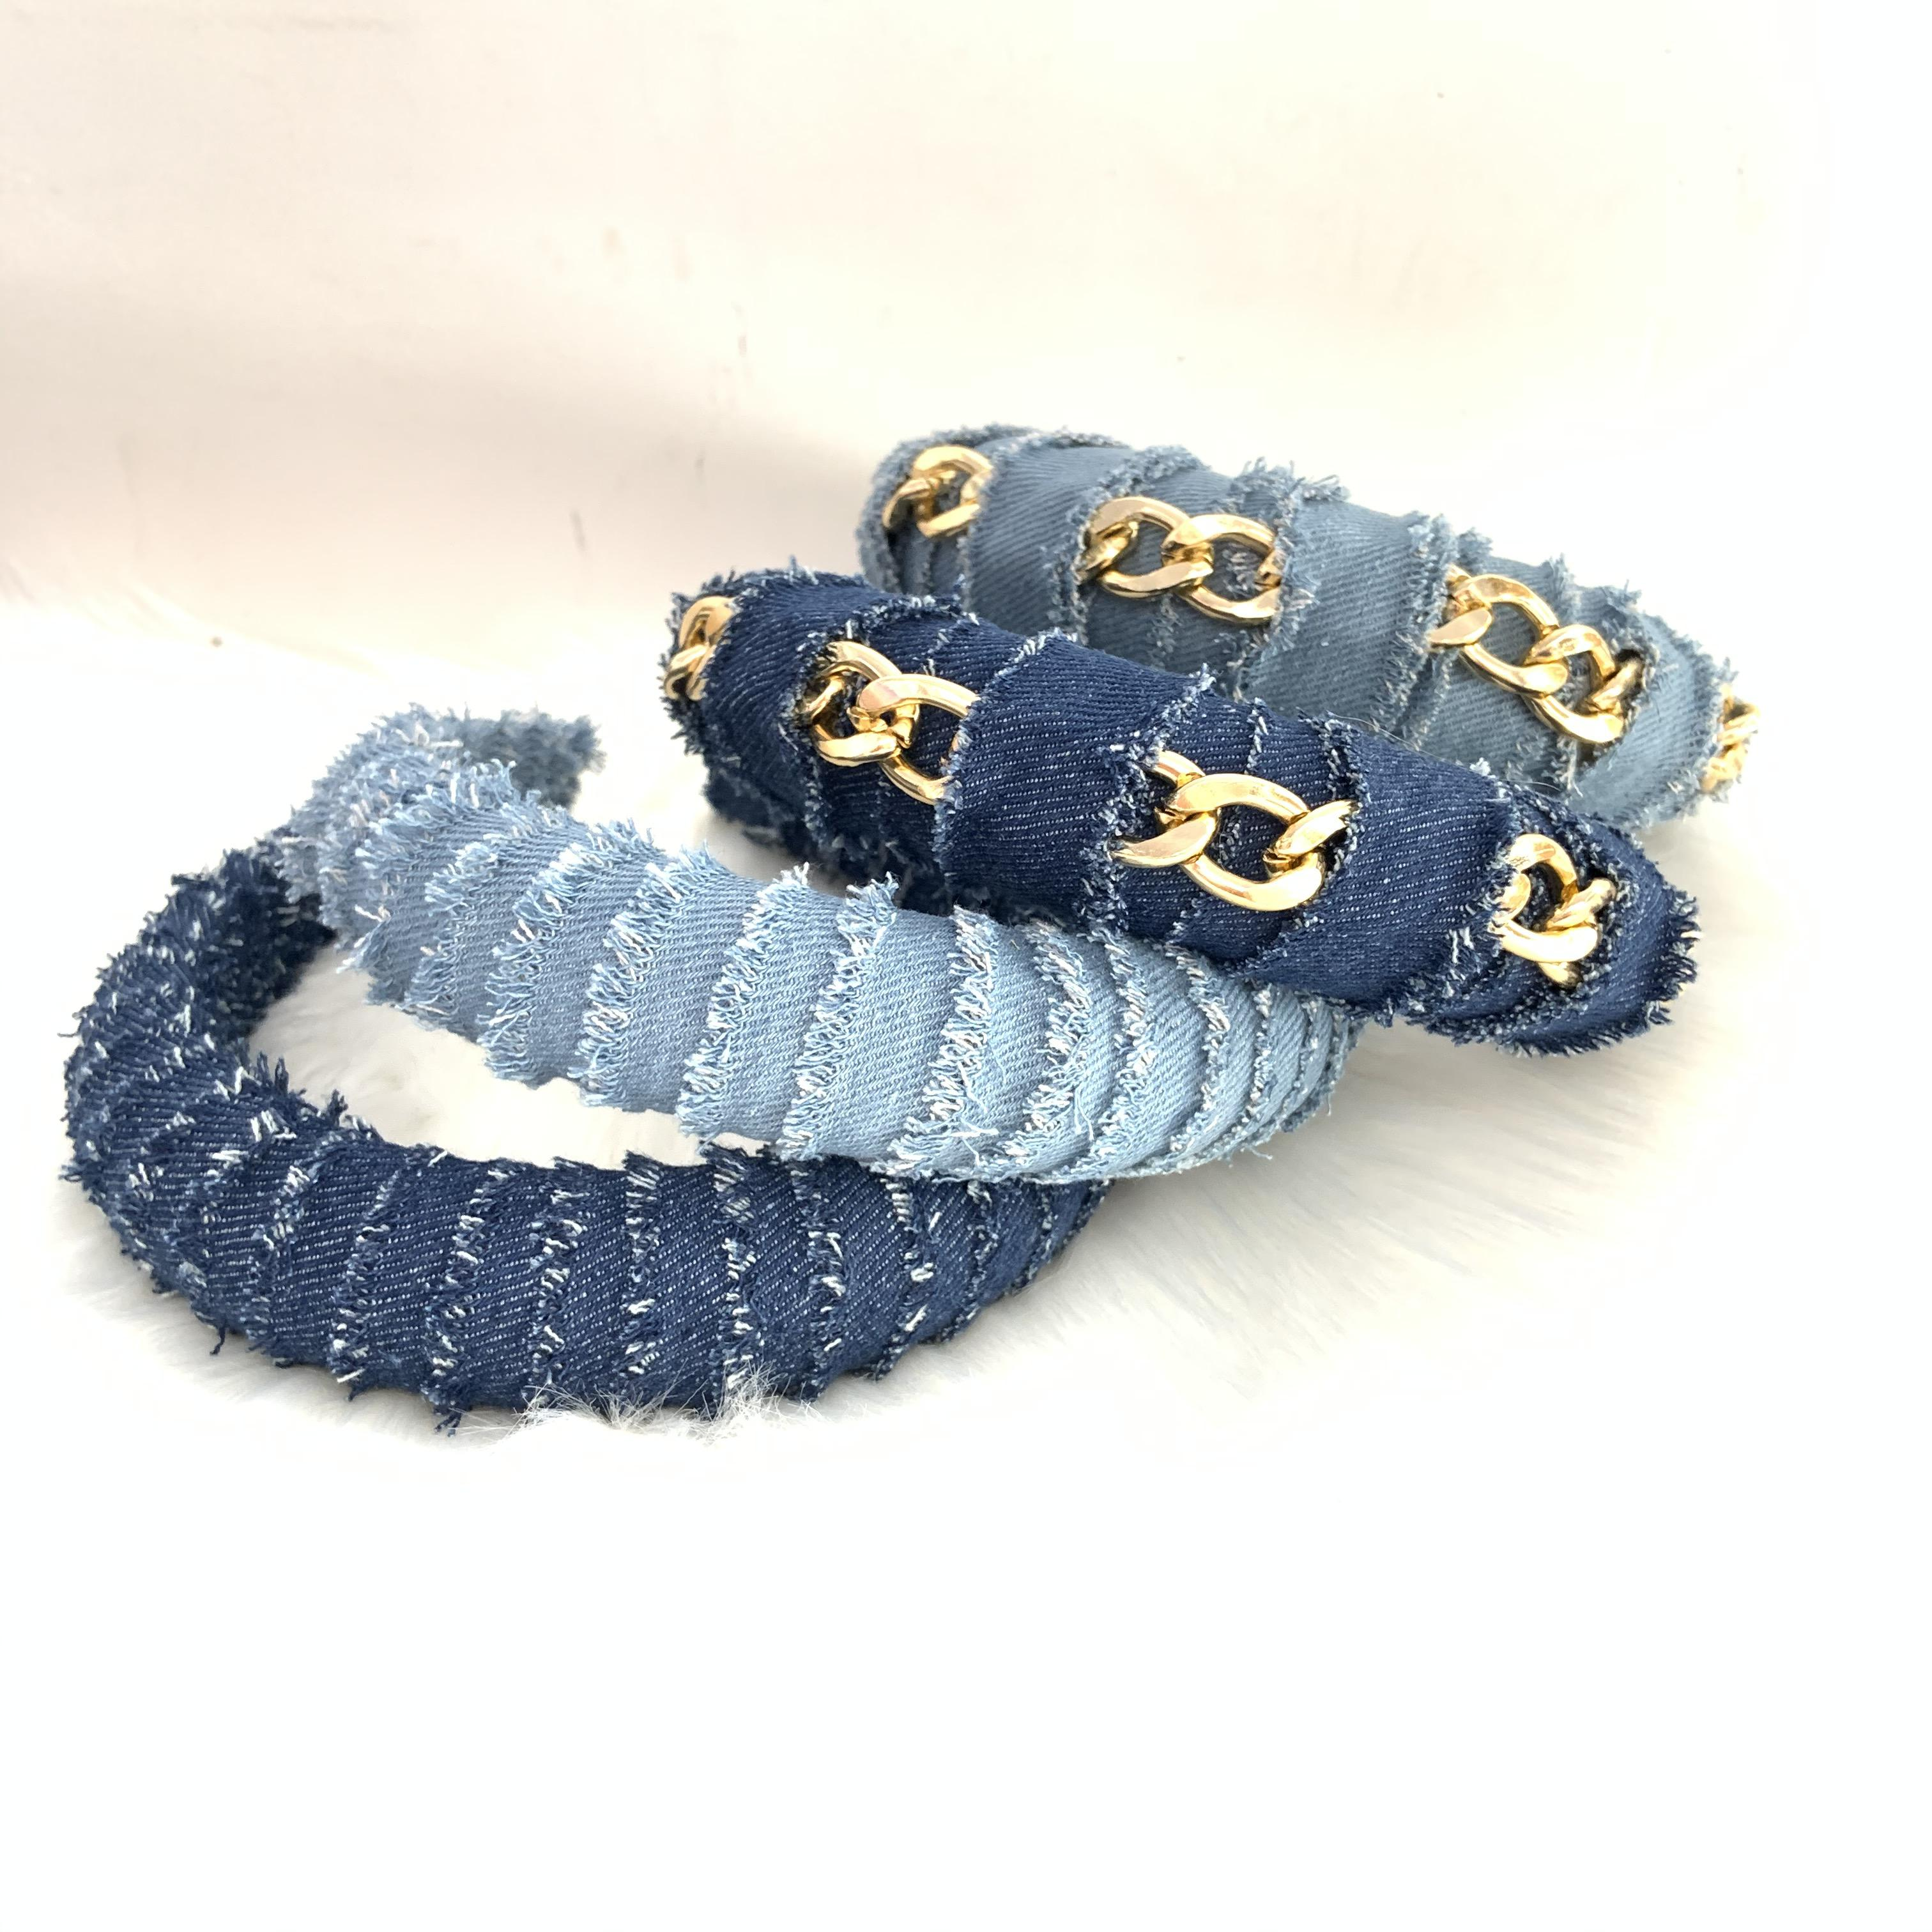 Jeans Headband 3cm Width High Quality Women's Metal Denim Headband